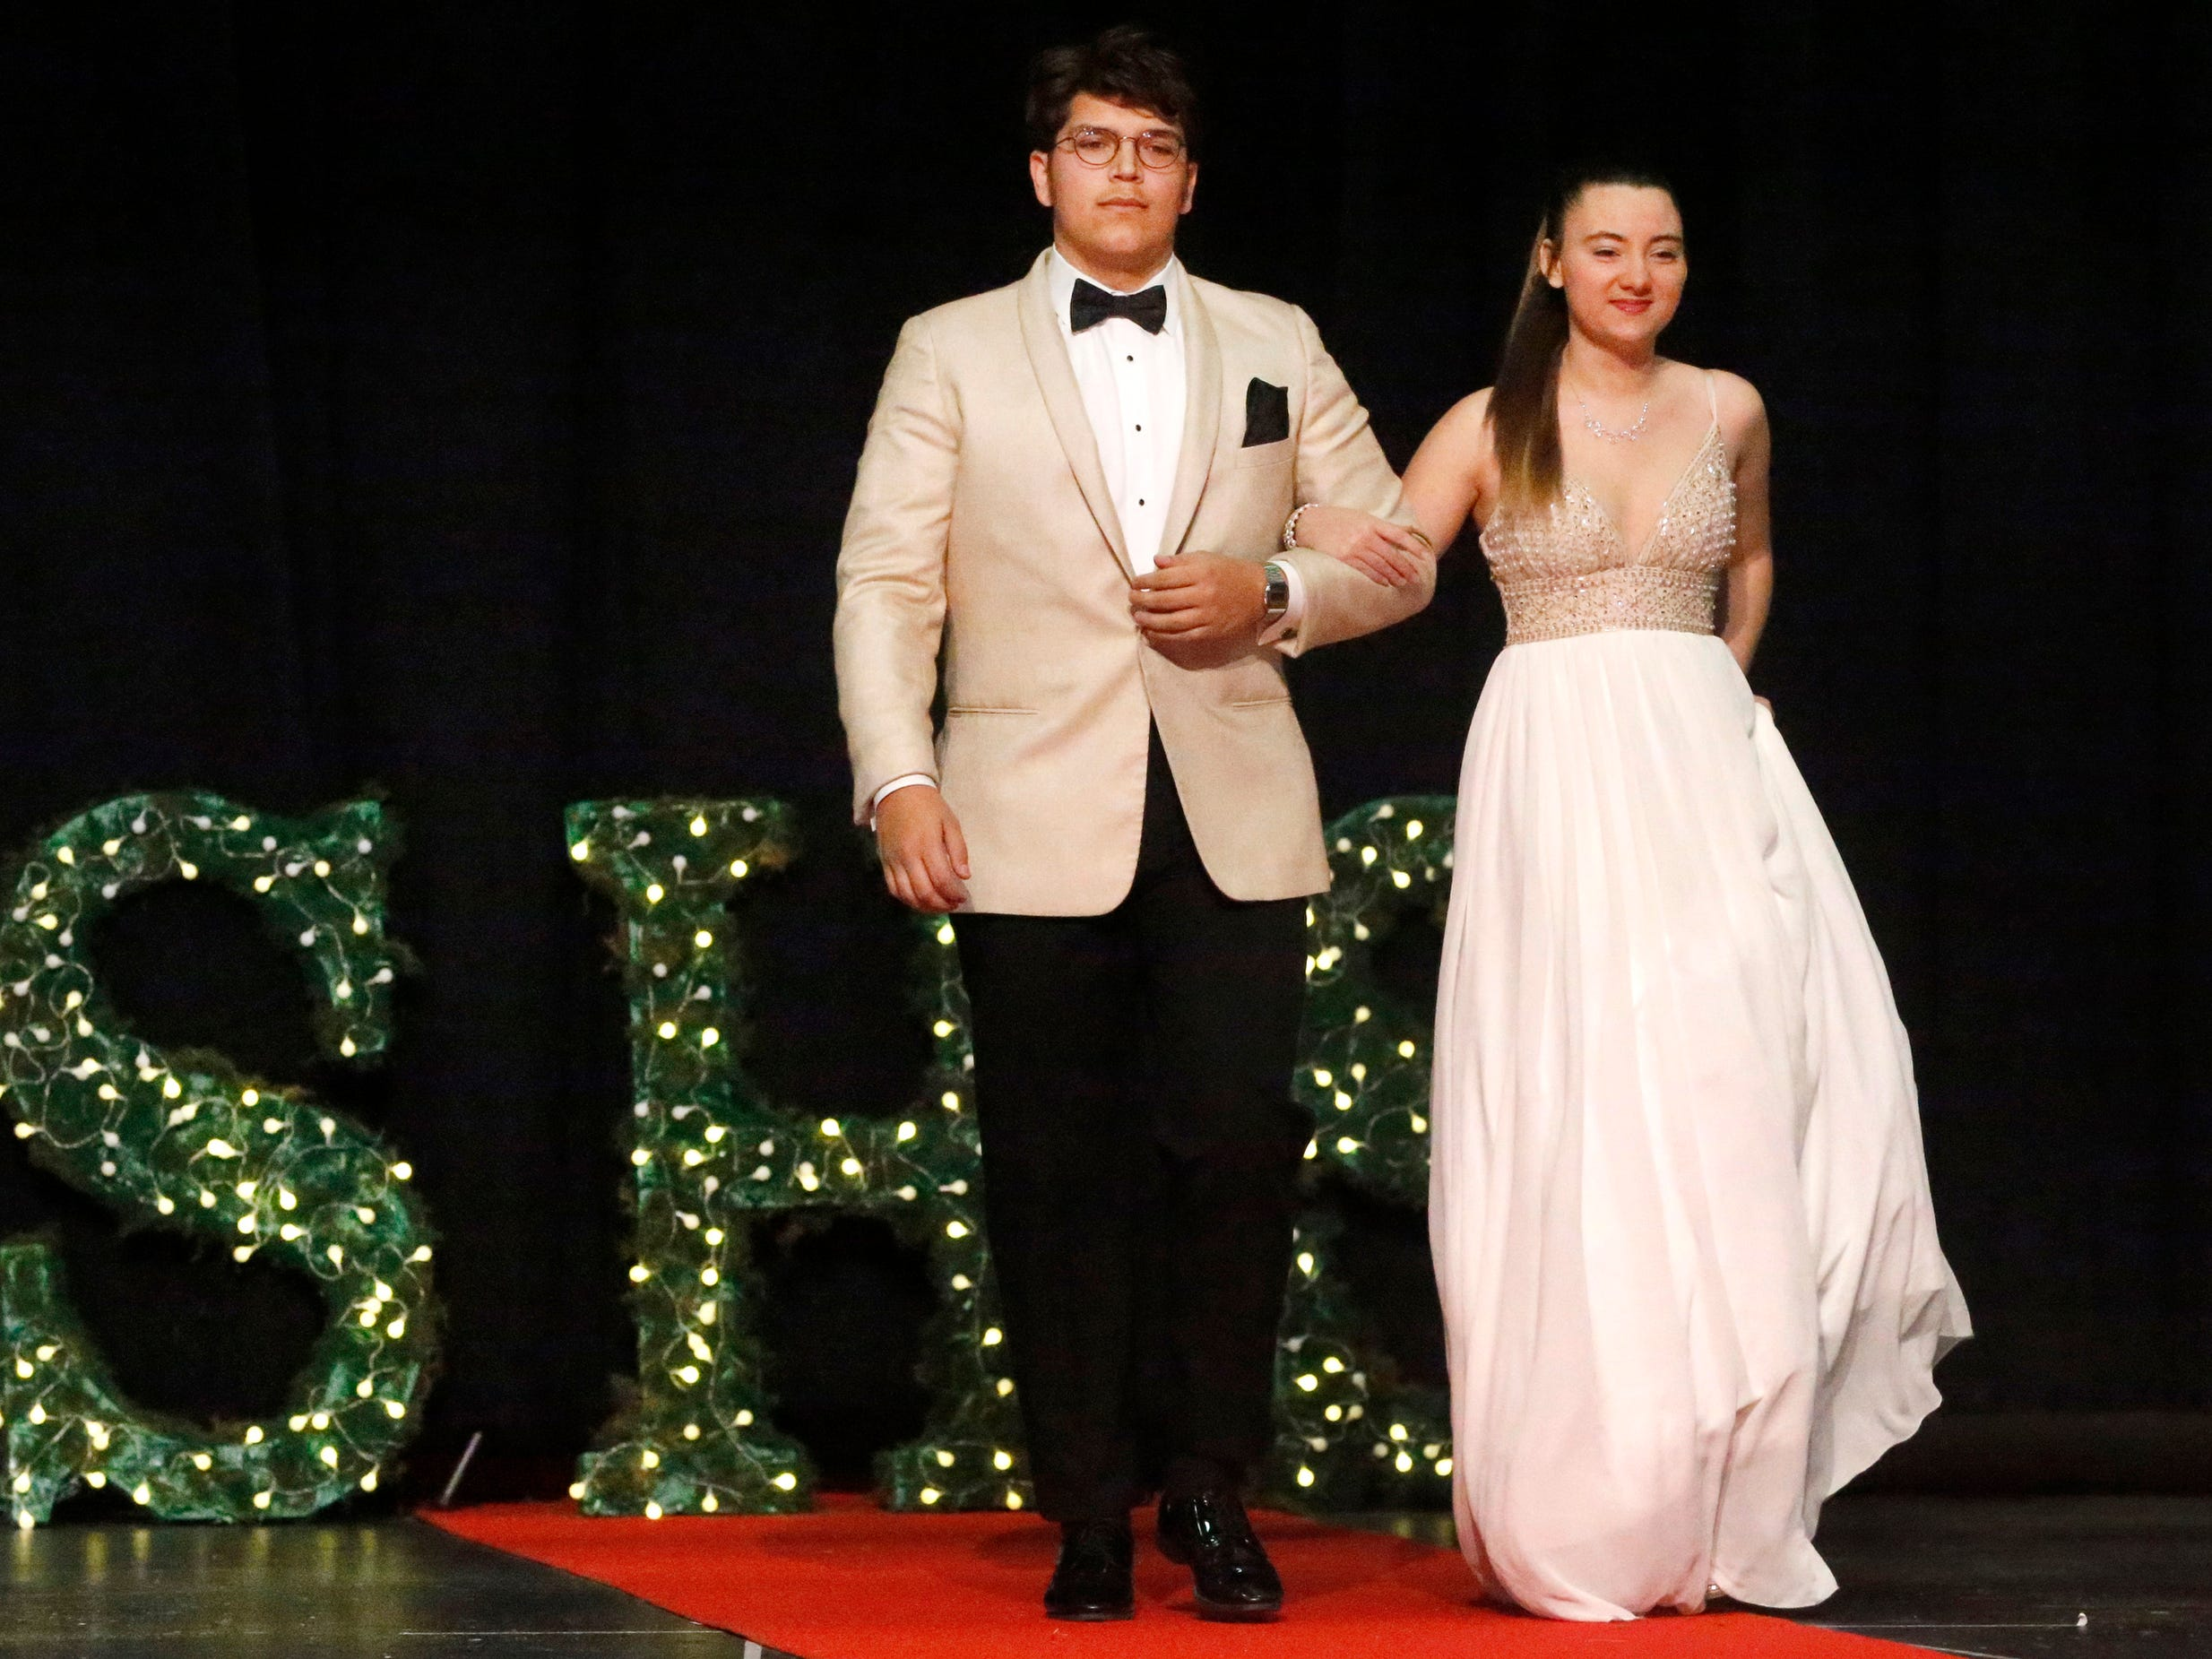 Marc Padilla, left andAubrie Shanks, right show off the latest in prom fashions during the Siegel Prom Fashion show on Thursday, Feb. 14, 2019.